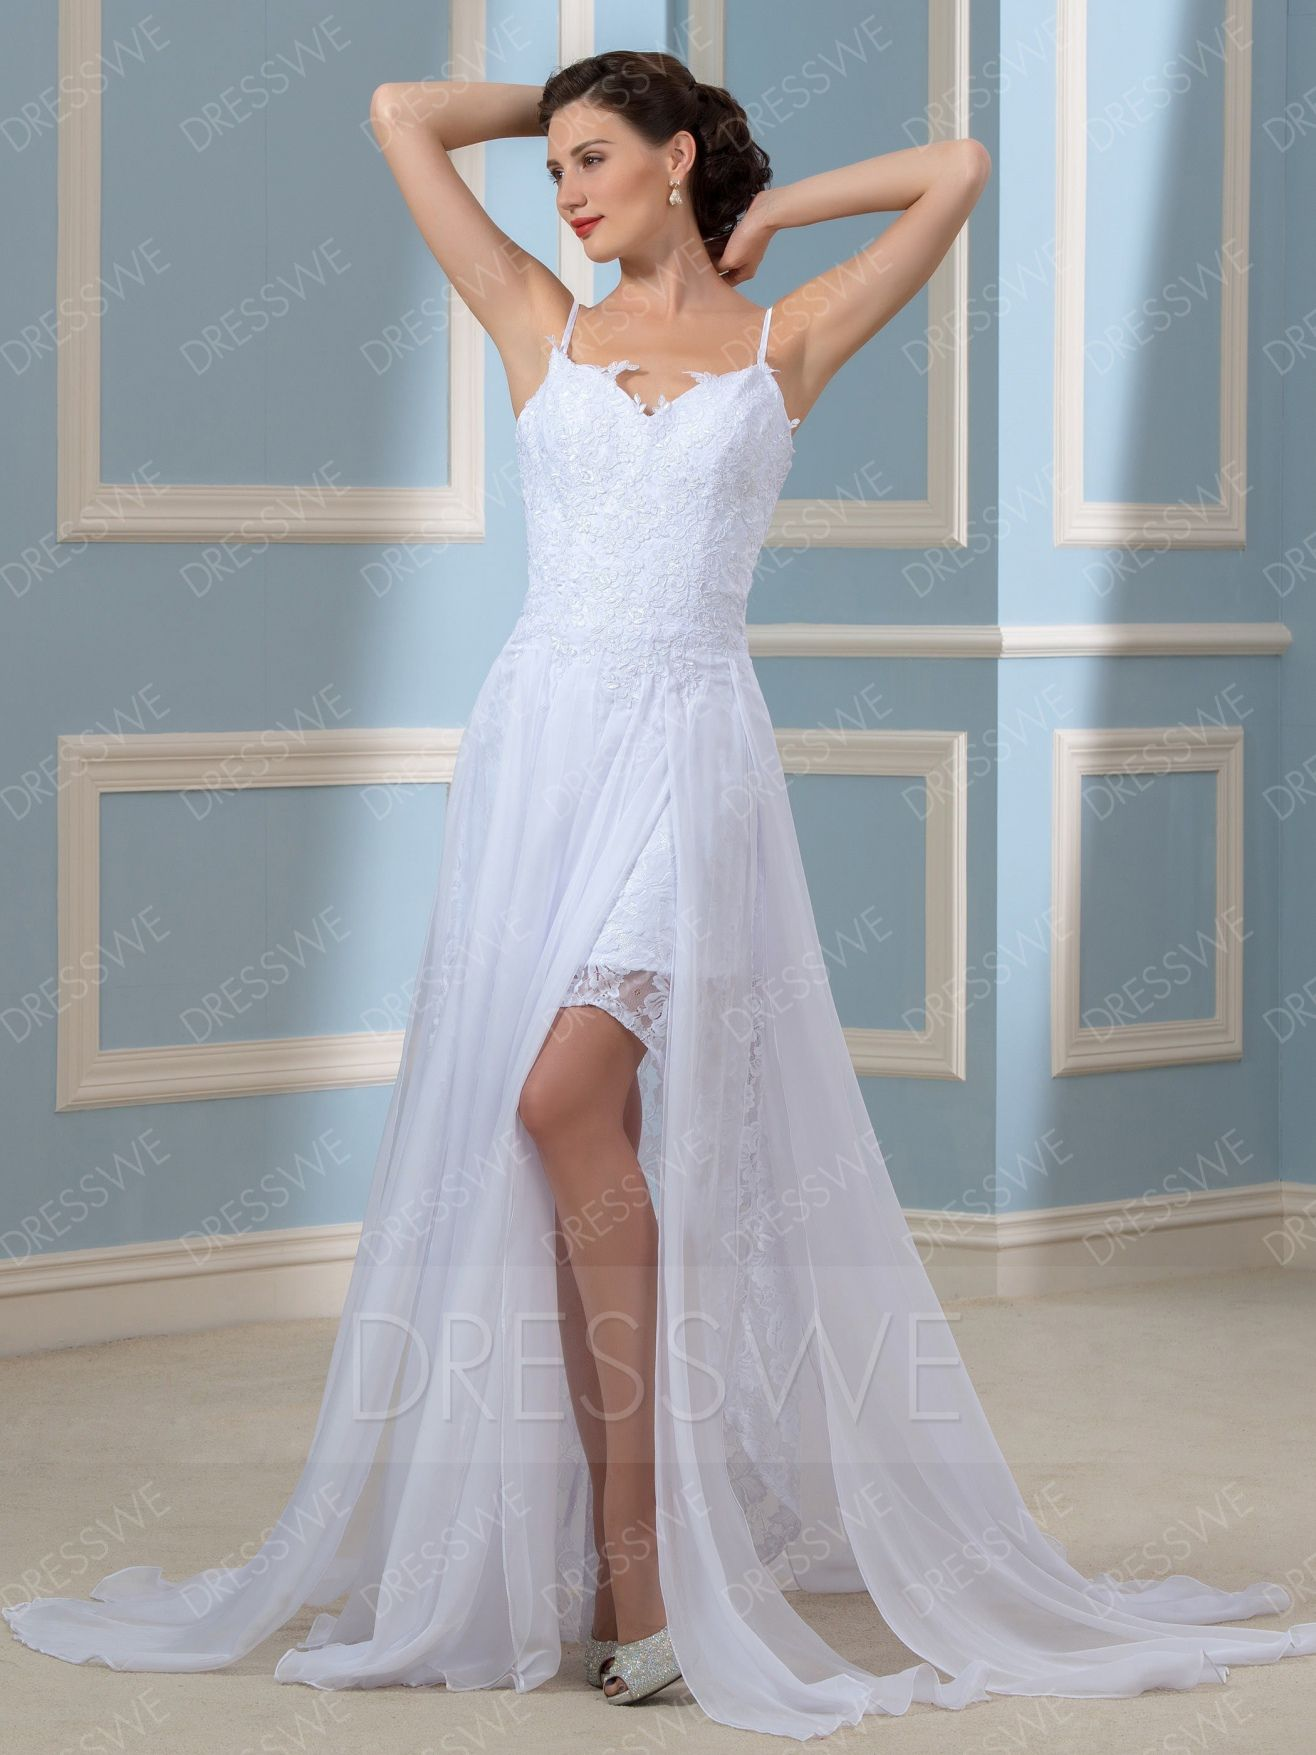 2019 Cheap Plus Size Wedding Dresses Under 200 - How to Dress for A ...